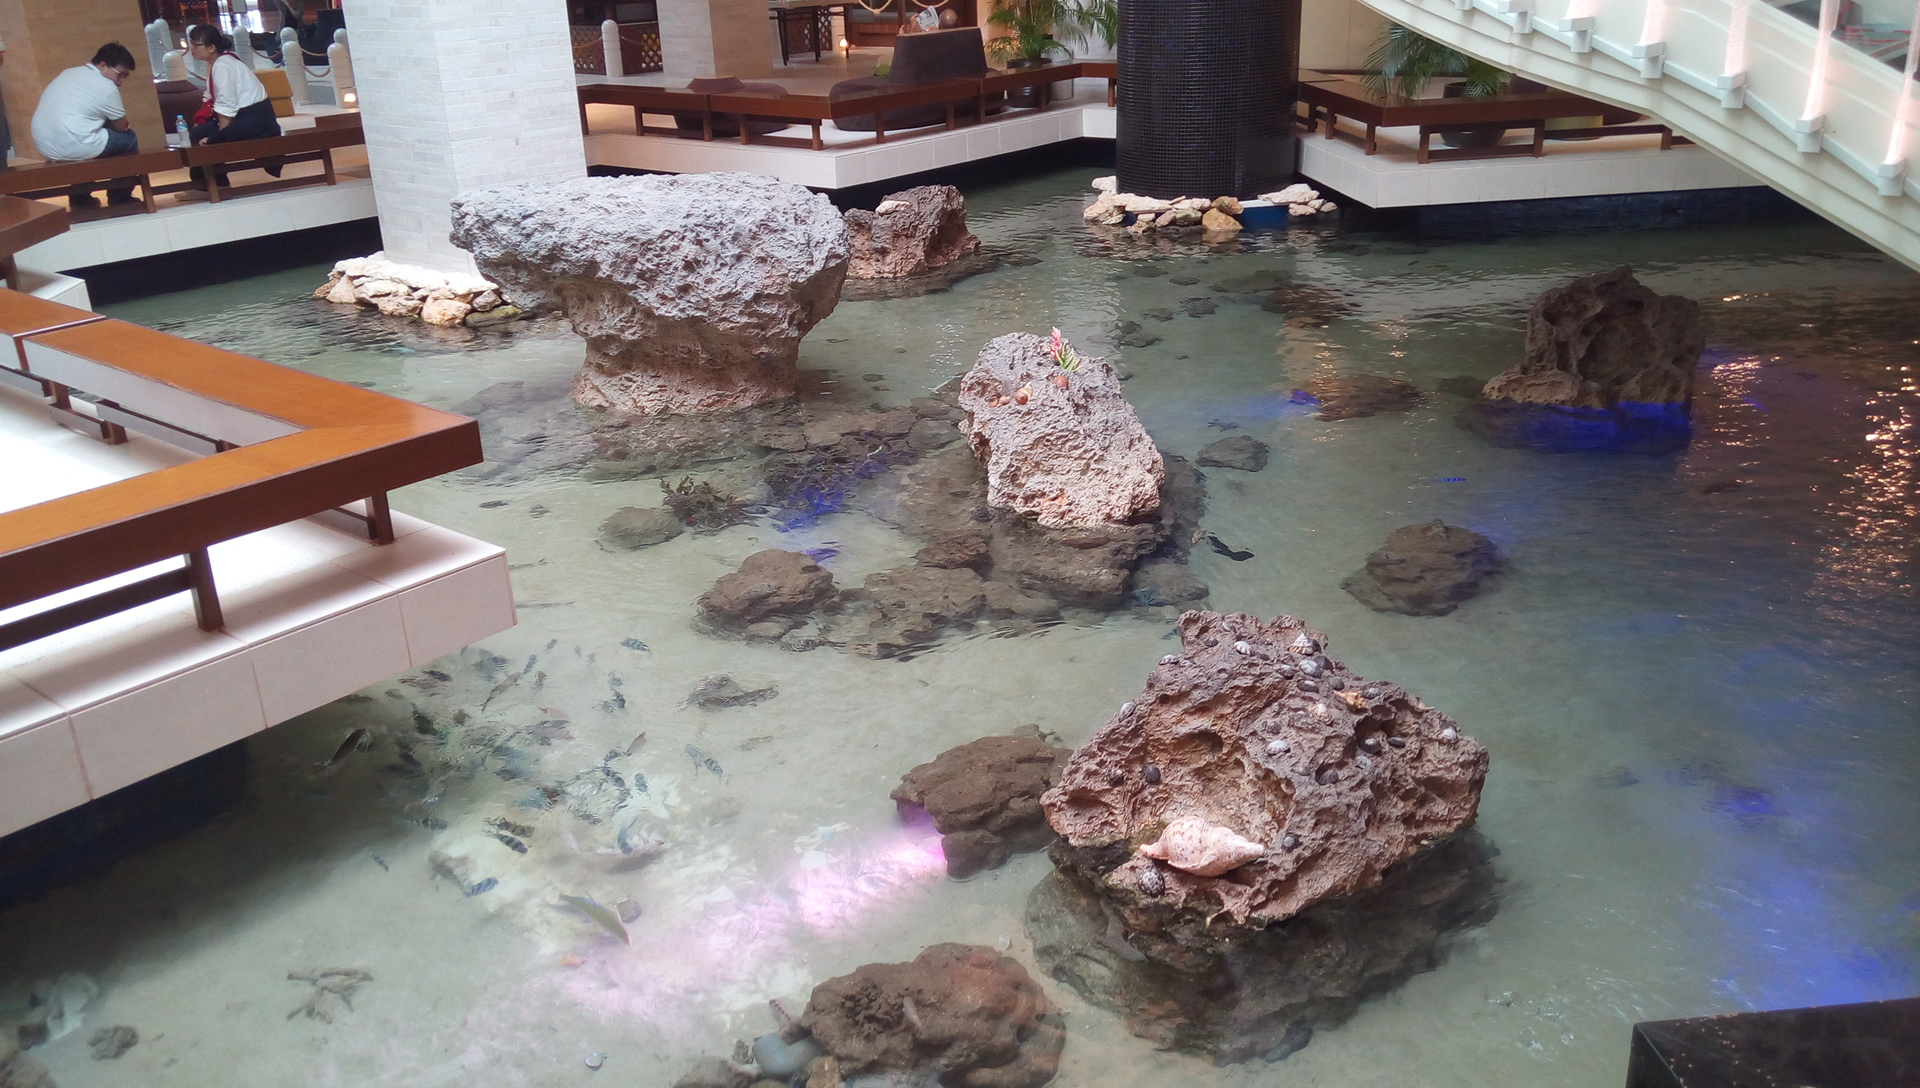 The inside of the hotel has become a space that reproduced the sea of Okinawa